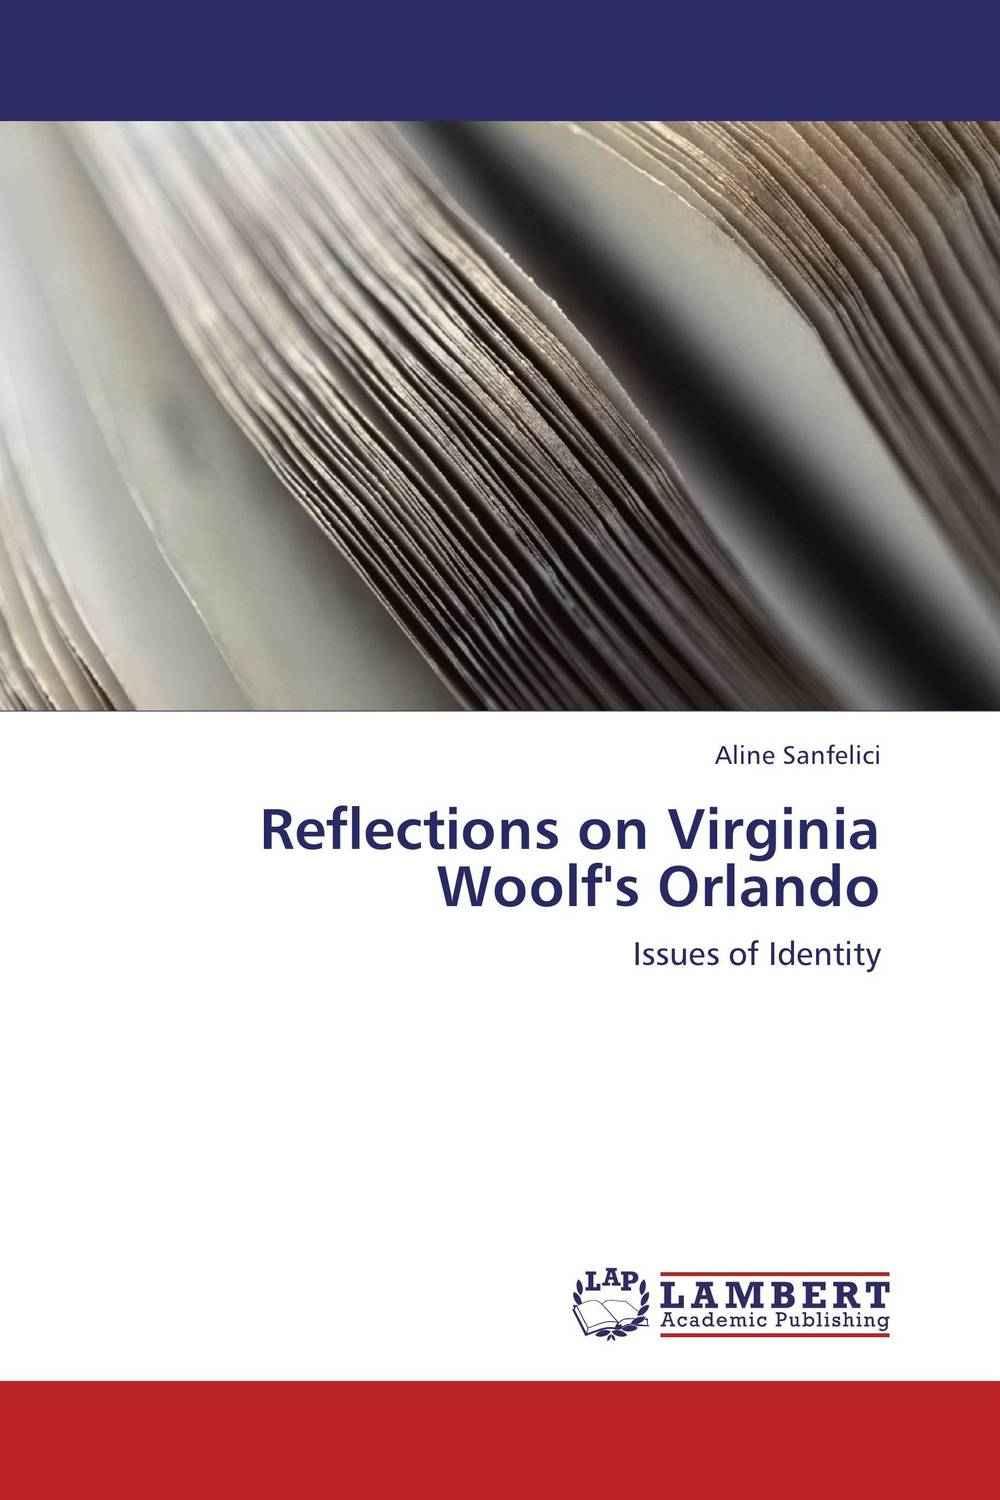 Reflections on Virginia Woolf's Orlando